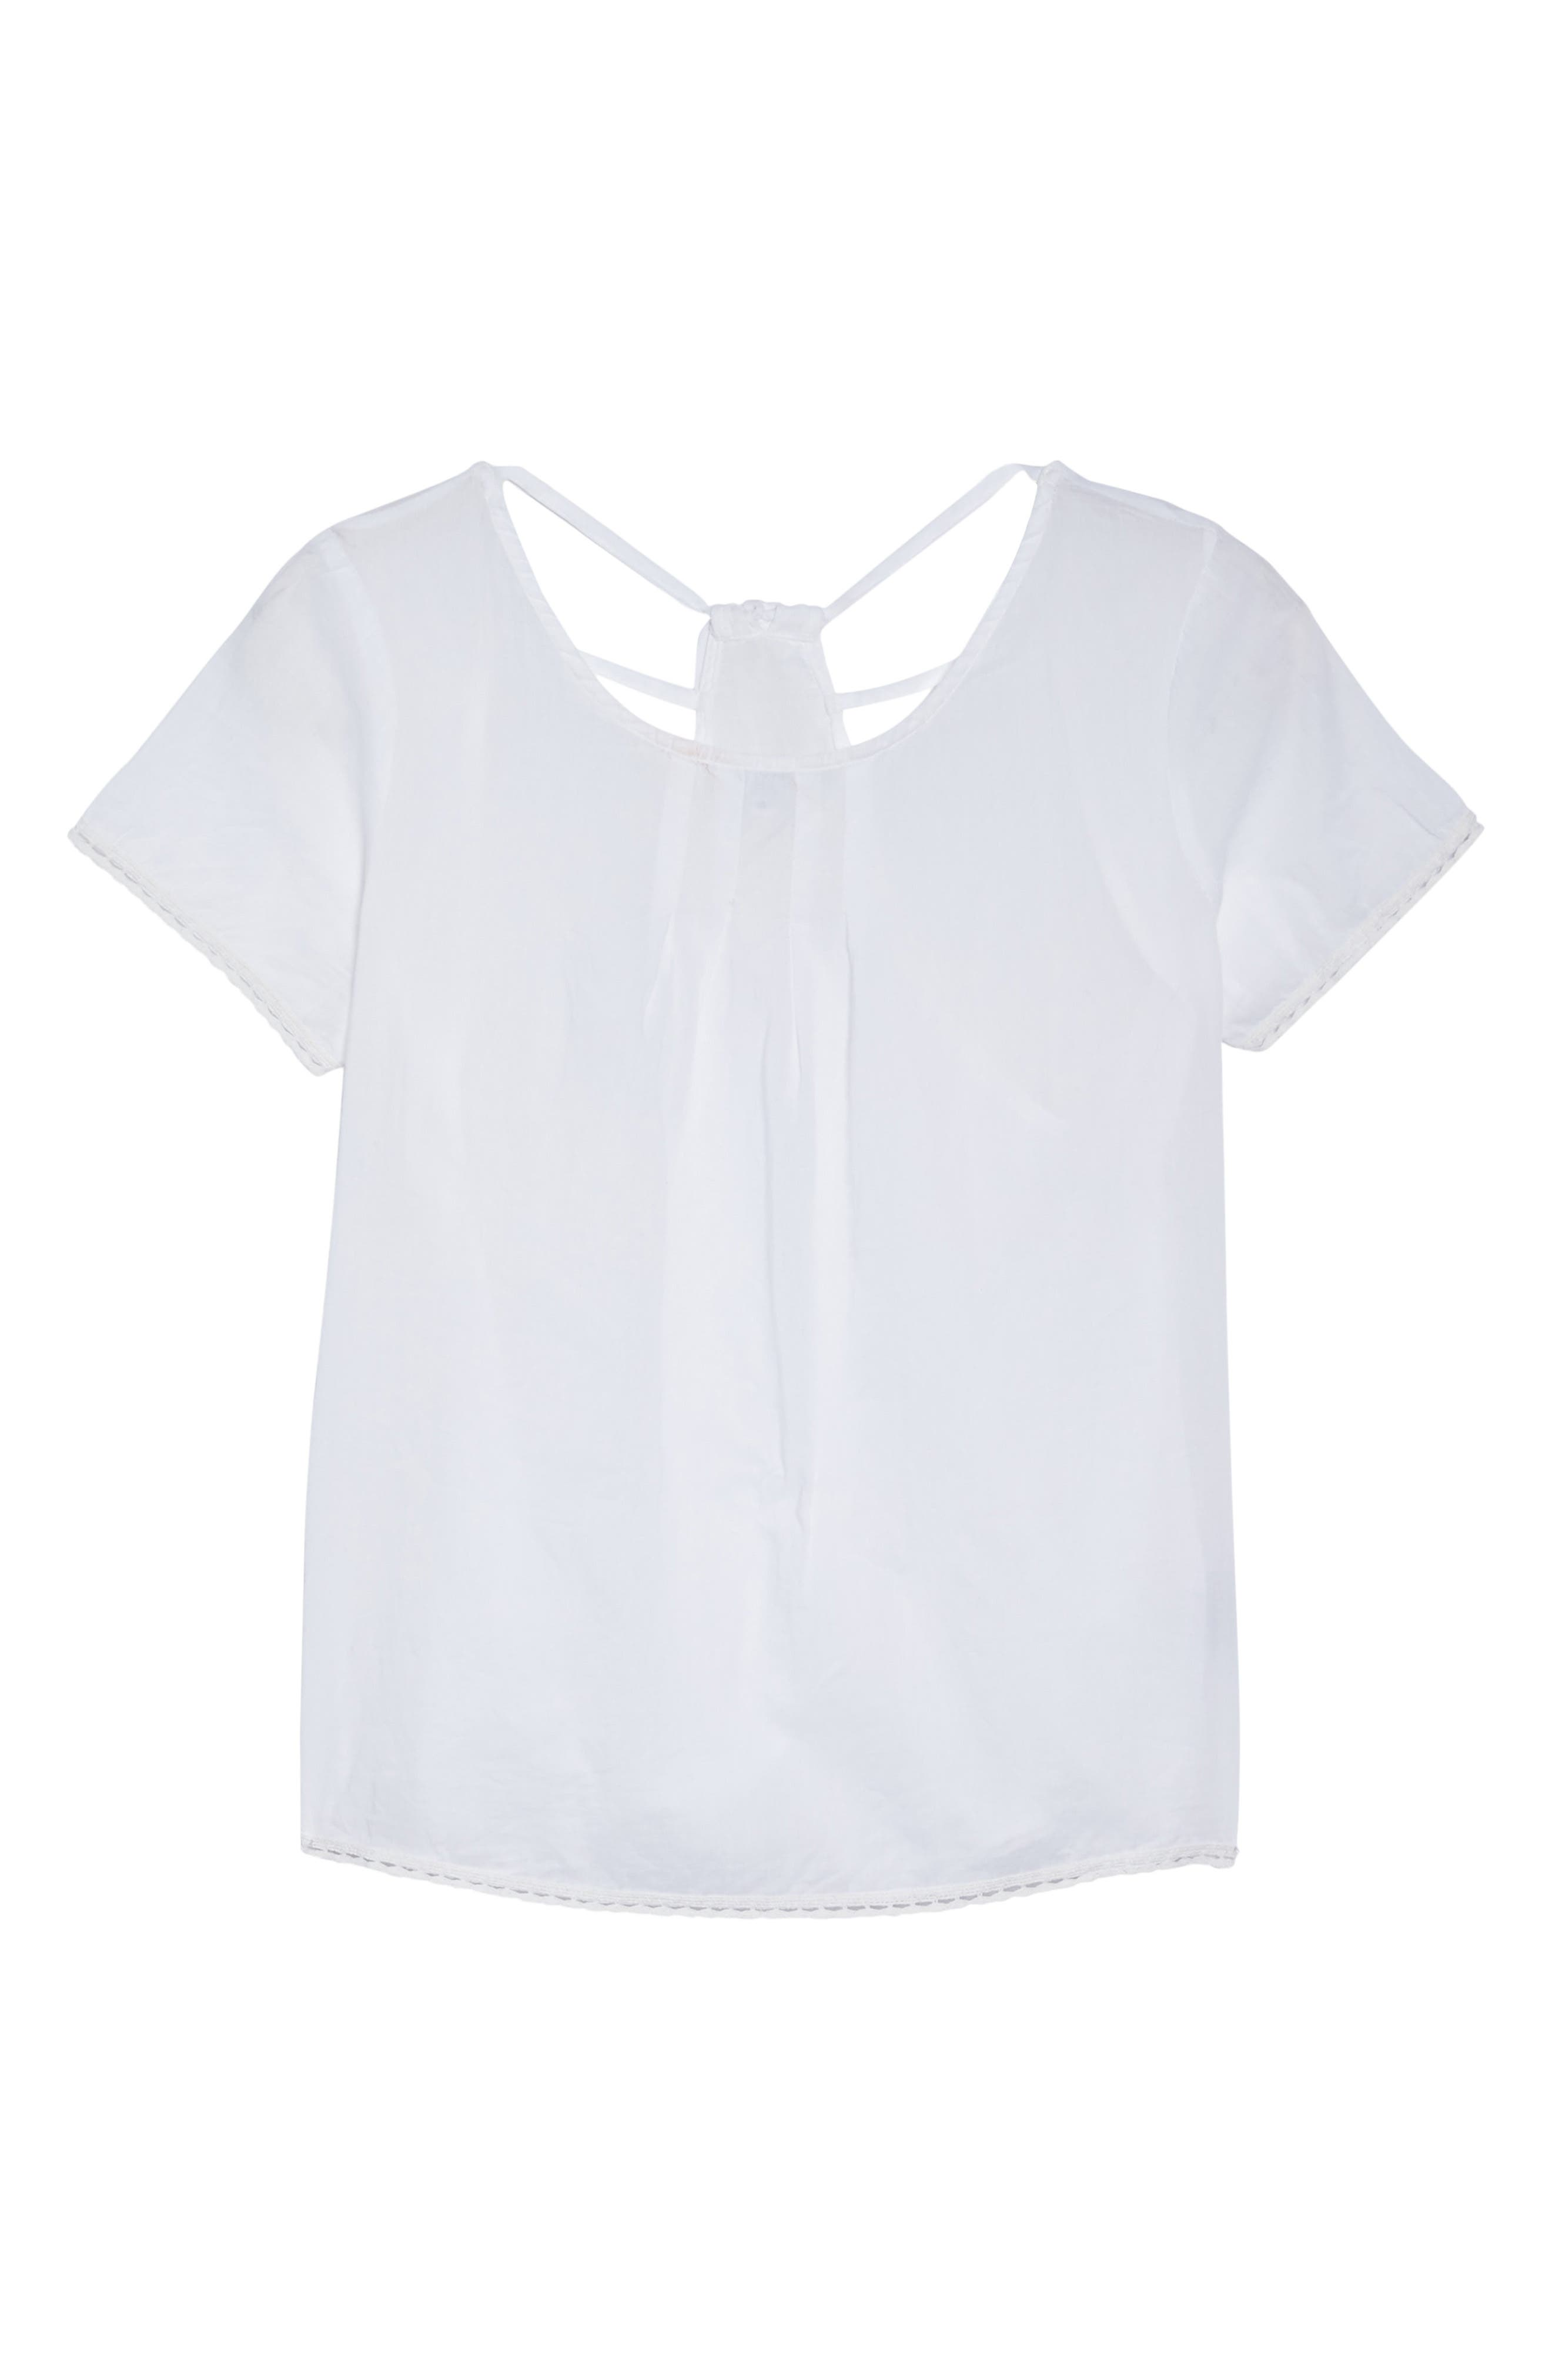 Tie Back Top,                             Alternate thumbnail 4, color,                             White